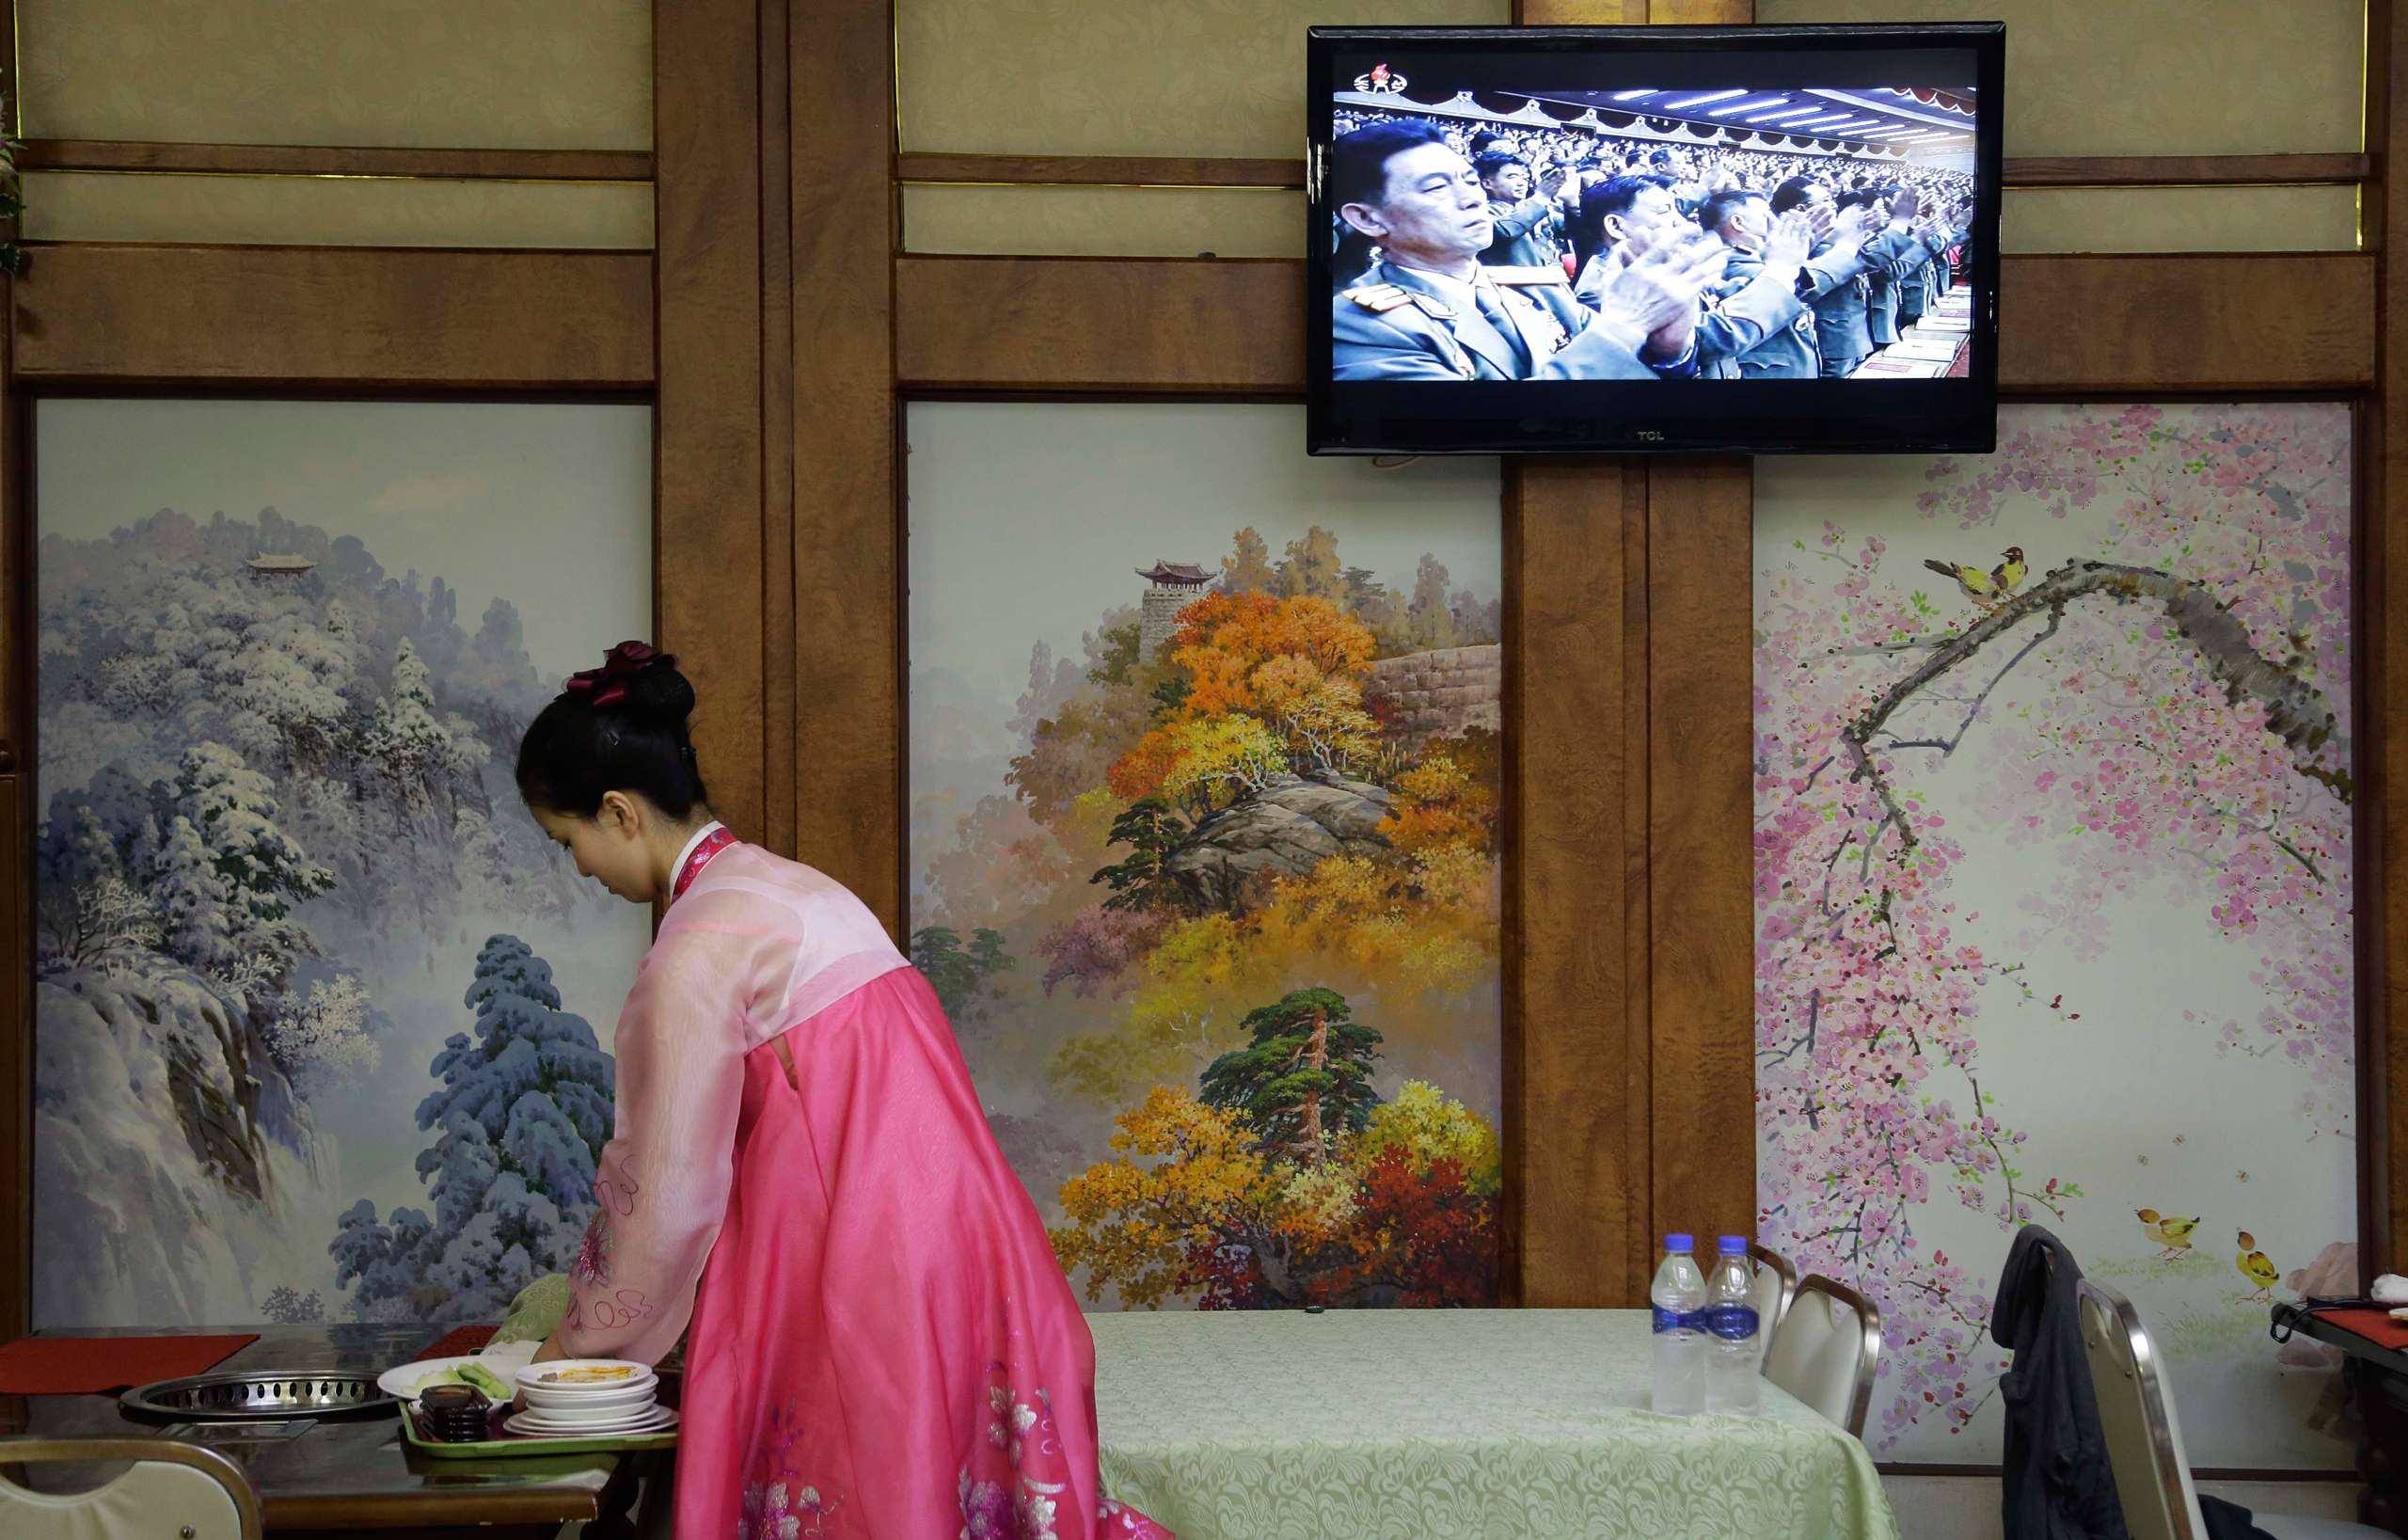 A waitress clears a table while a broadcast of the second day of the 7th Congress of the Workers' Party of Korea is shown on local television in Pyongyang on May 7, 2016.